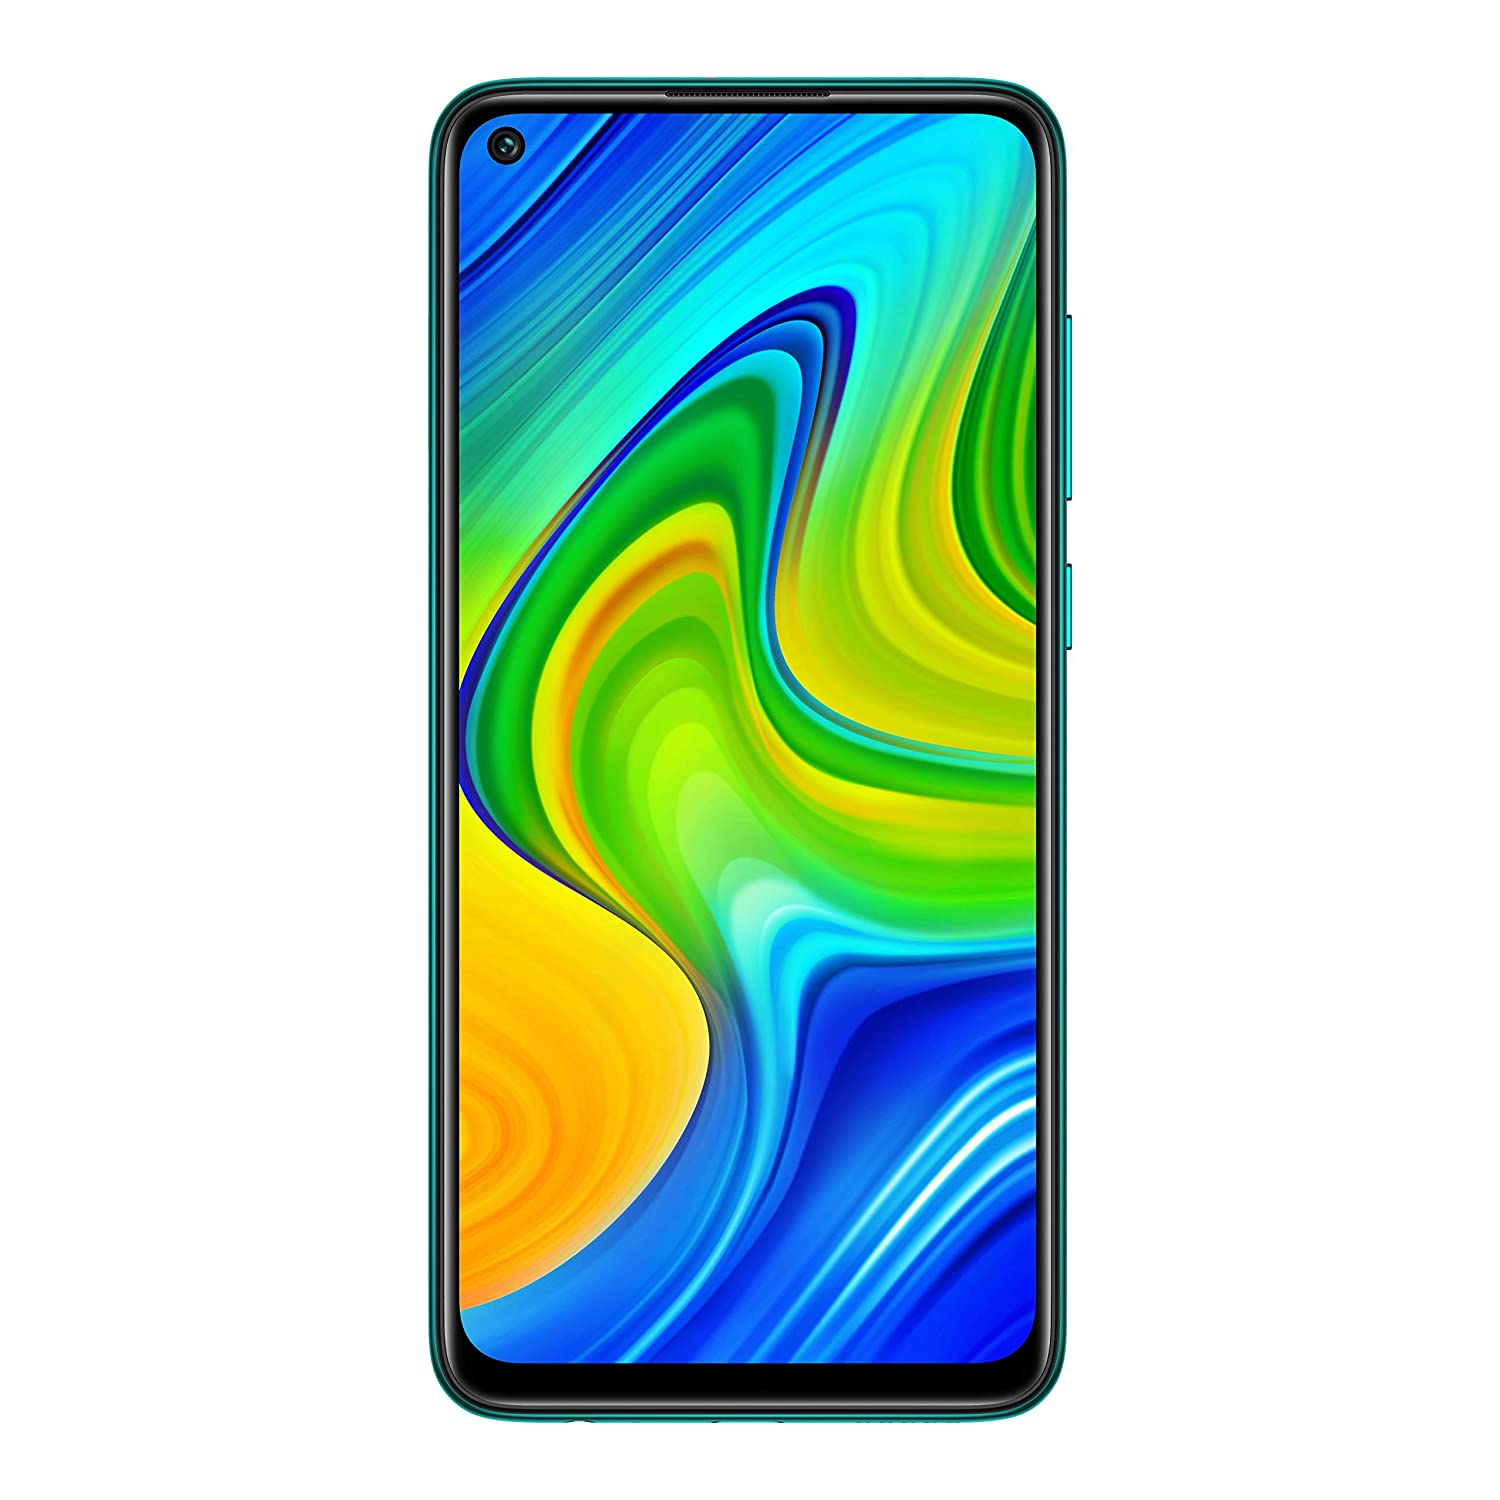 Redmi Note 9 4 GB 64 GB Aqua Green